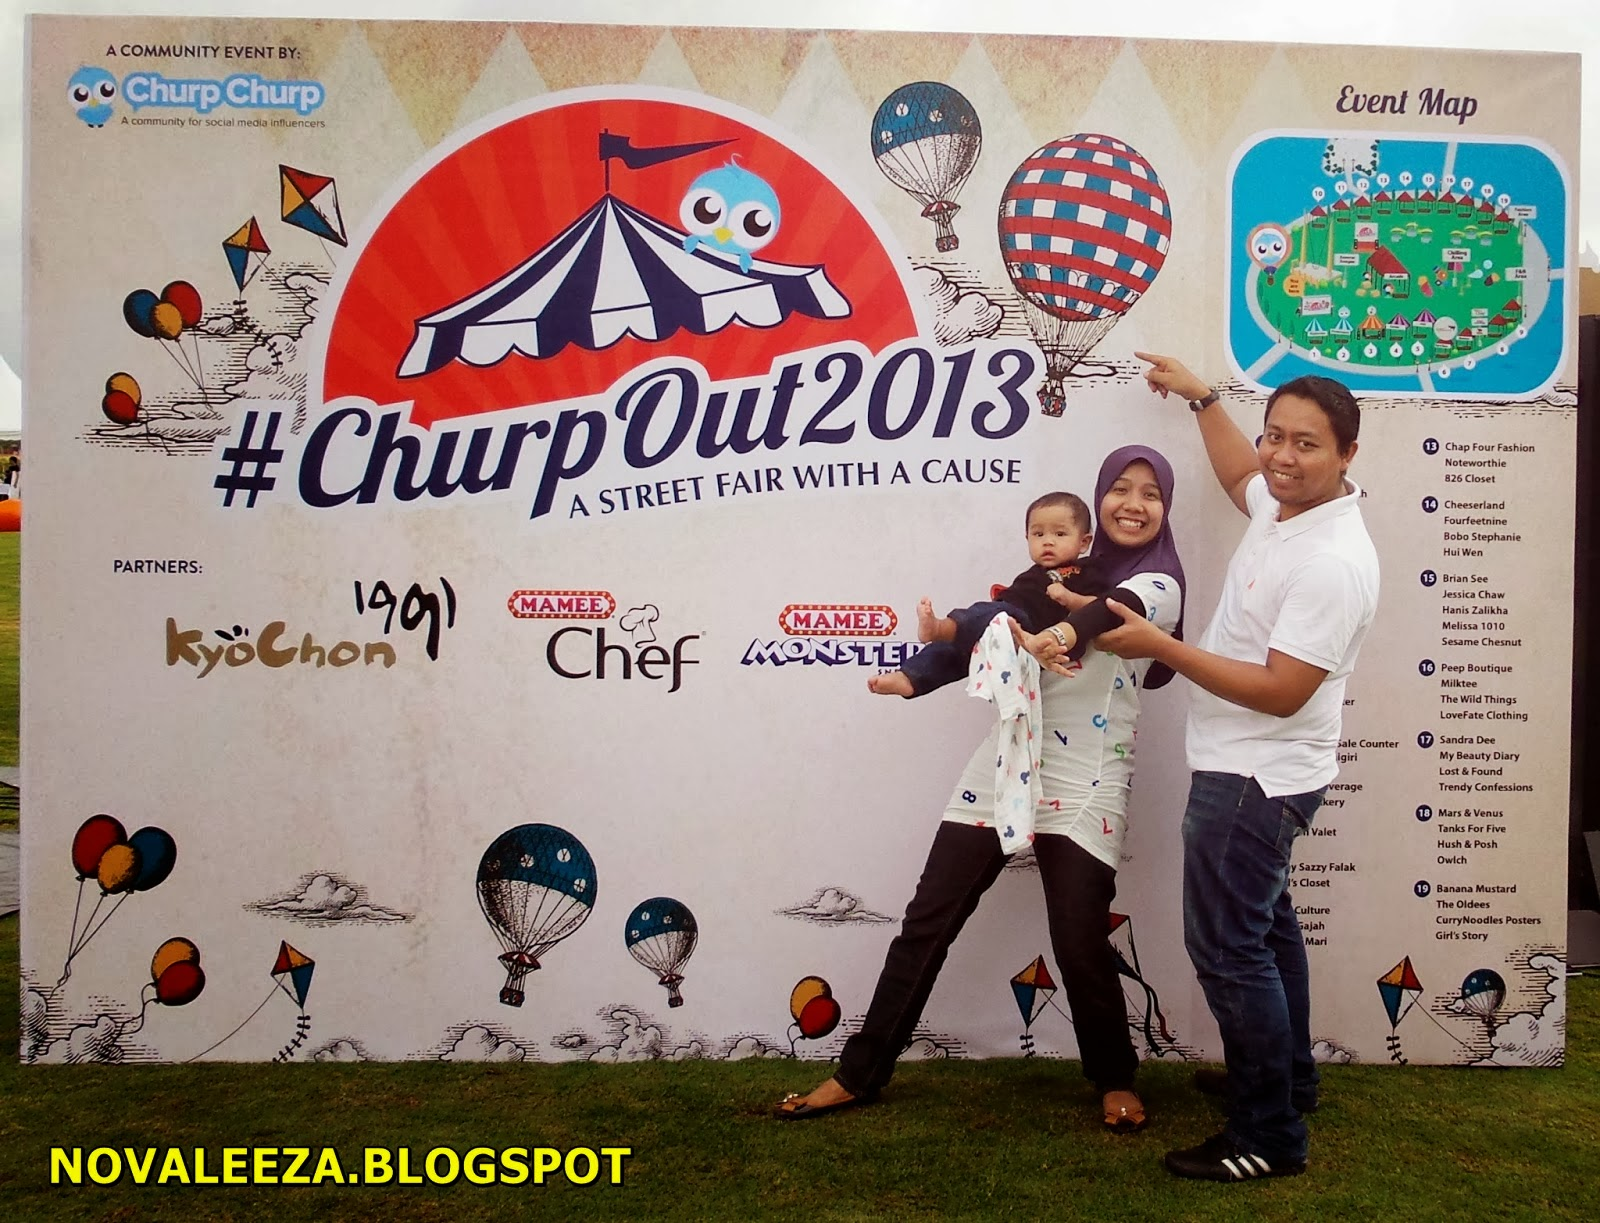 #CHURPOUT2013 di Setia City Mall, Shah Alam 19.10.2013